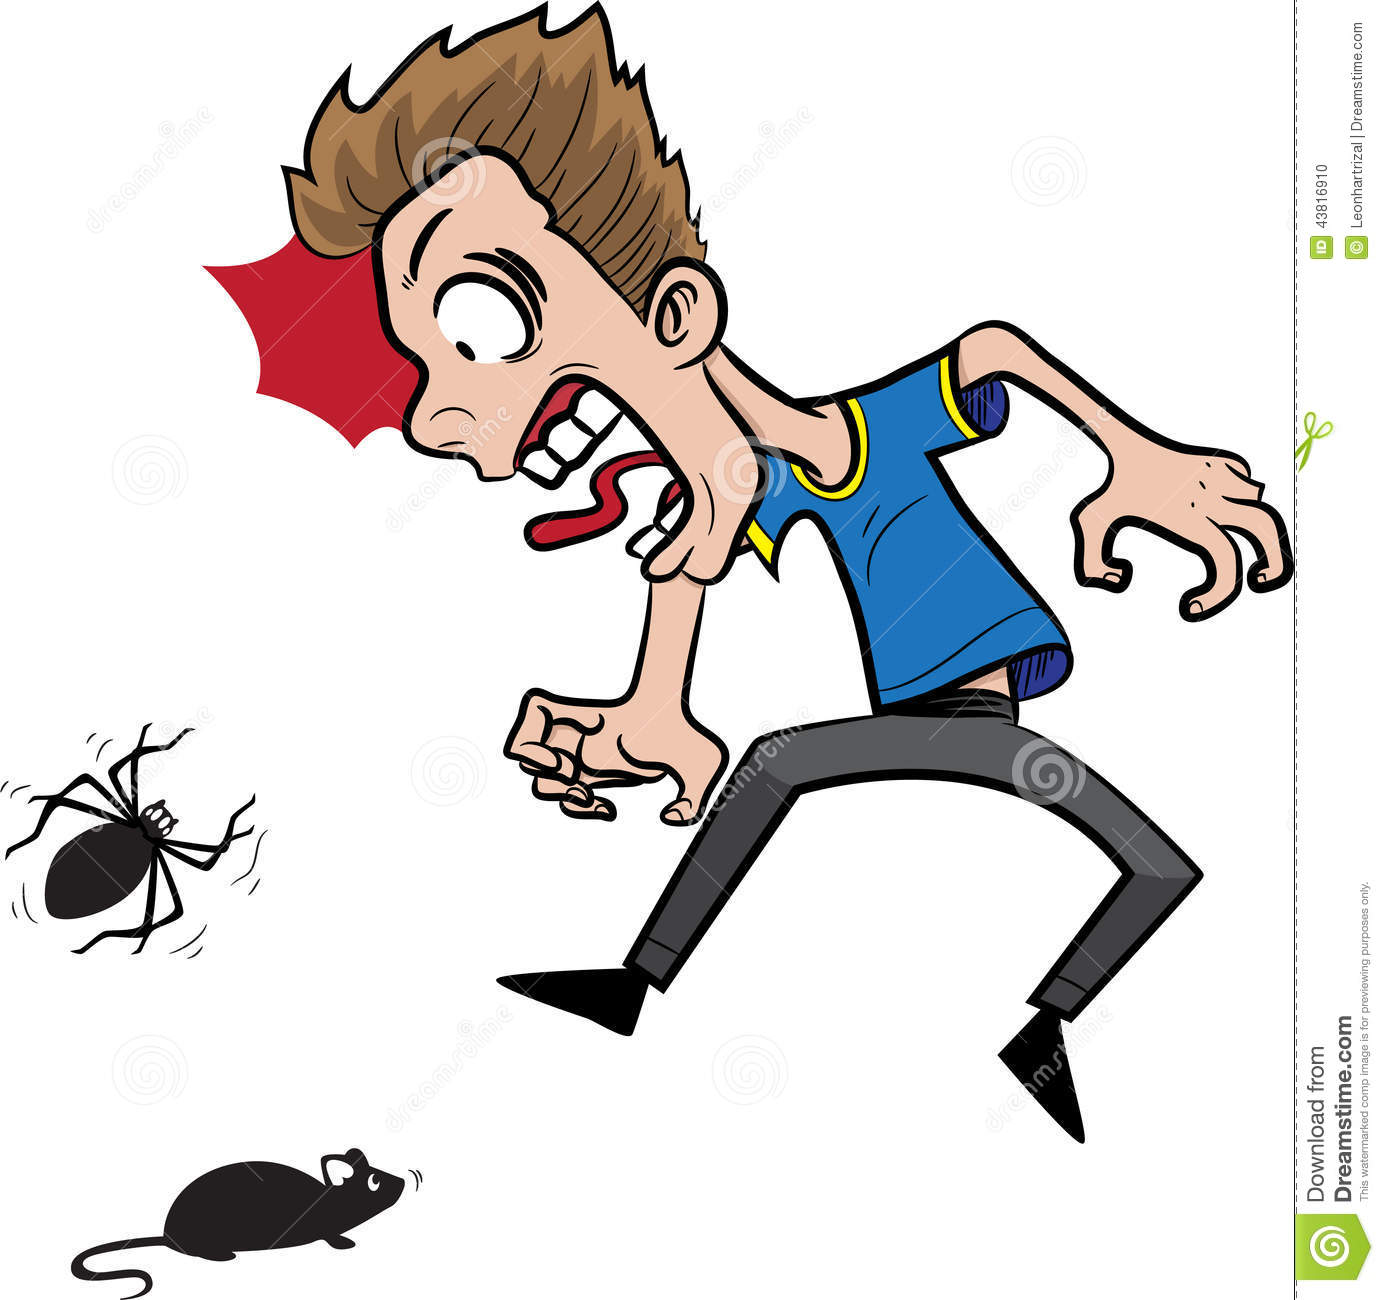 Scared of spiders clipart.